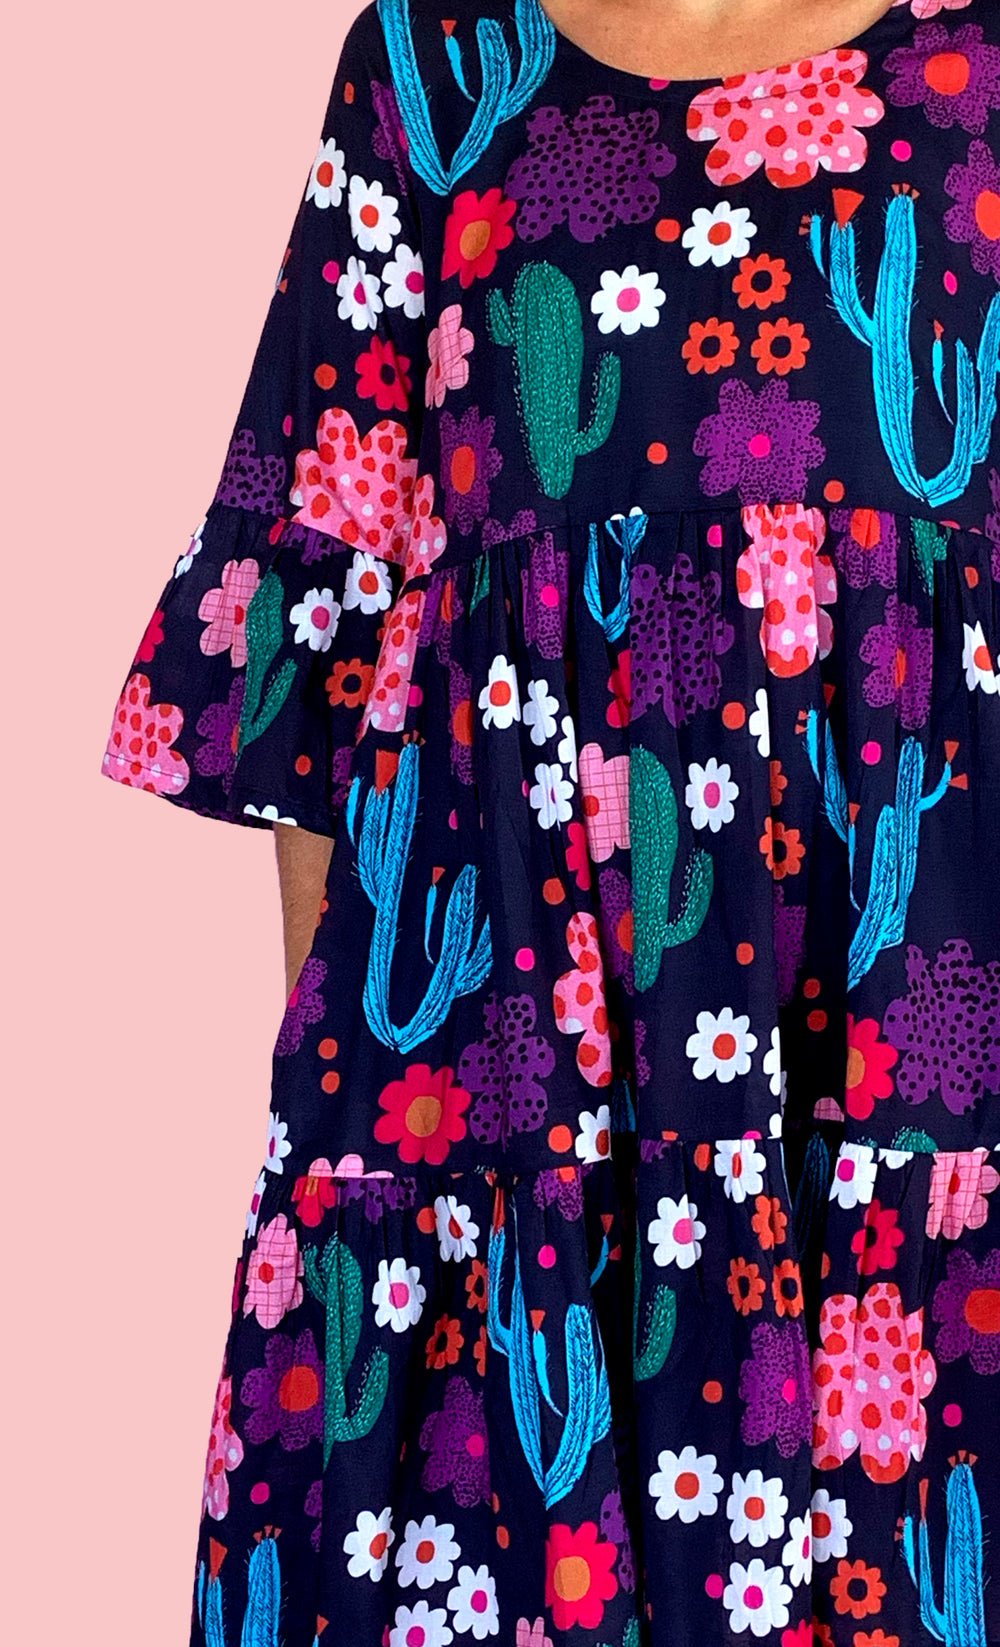 AVAILABLE NOW Bloom dress 100% cotton (2 styles. Swipe to see images of option 2)